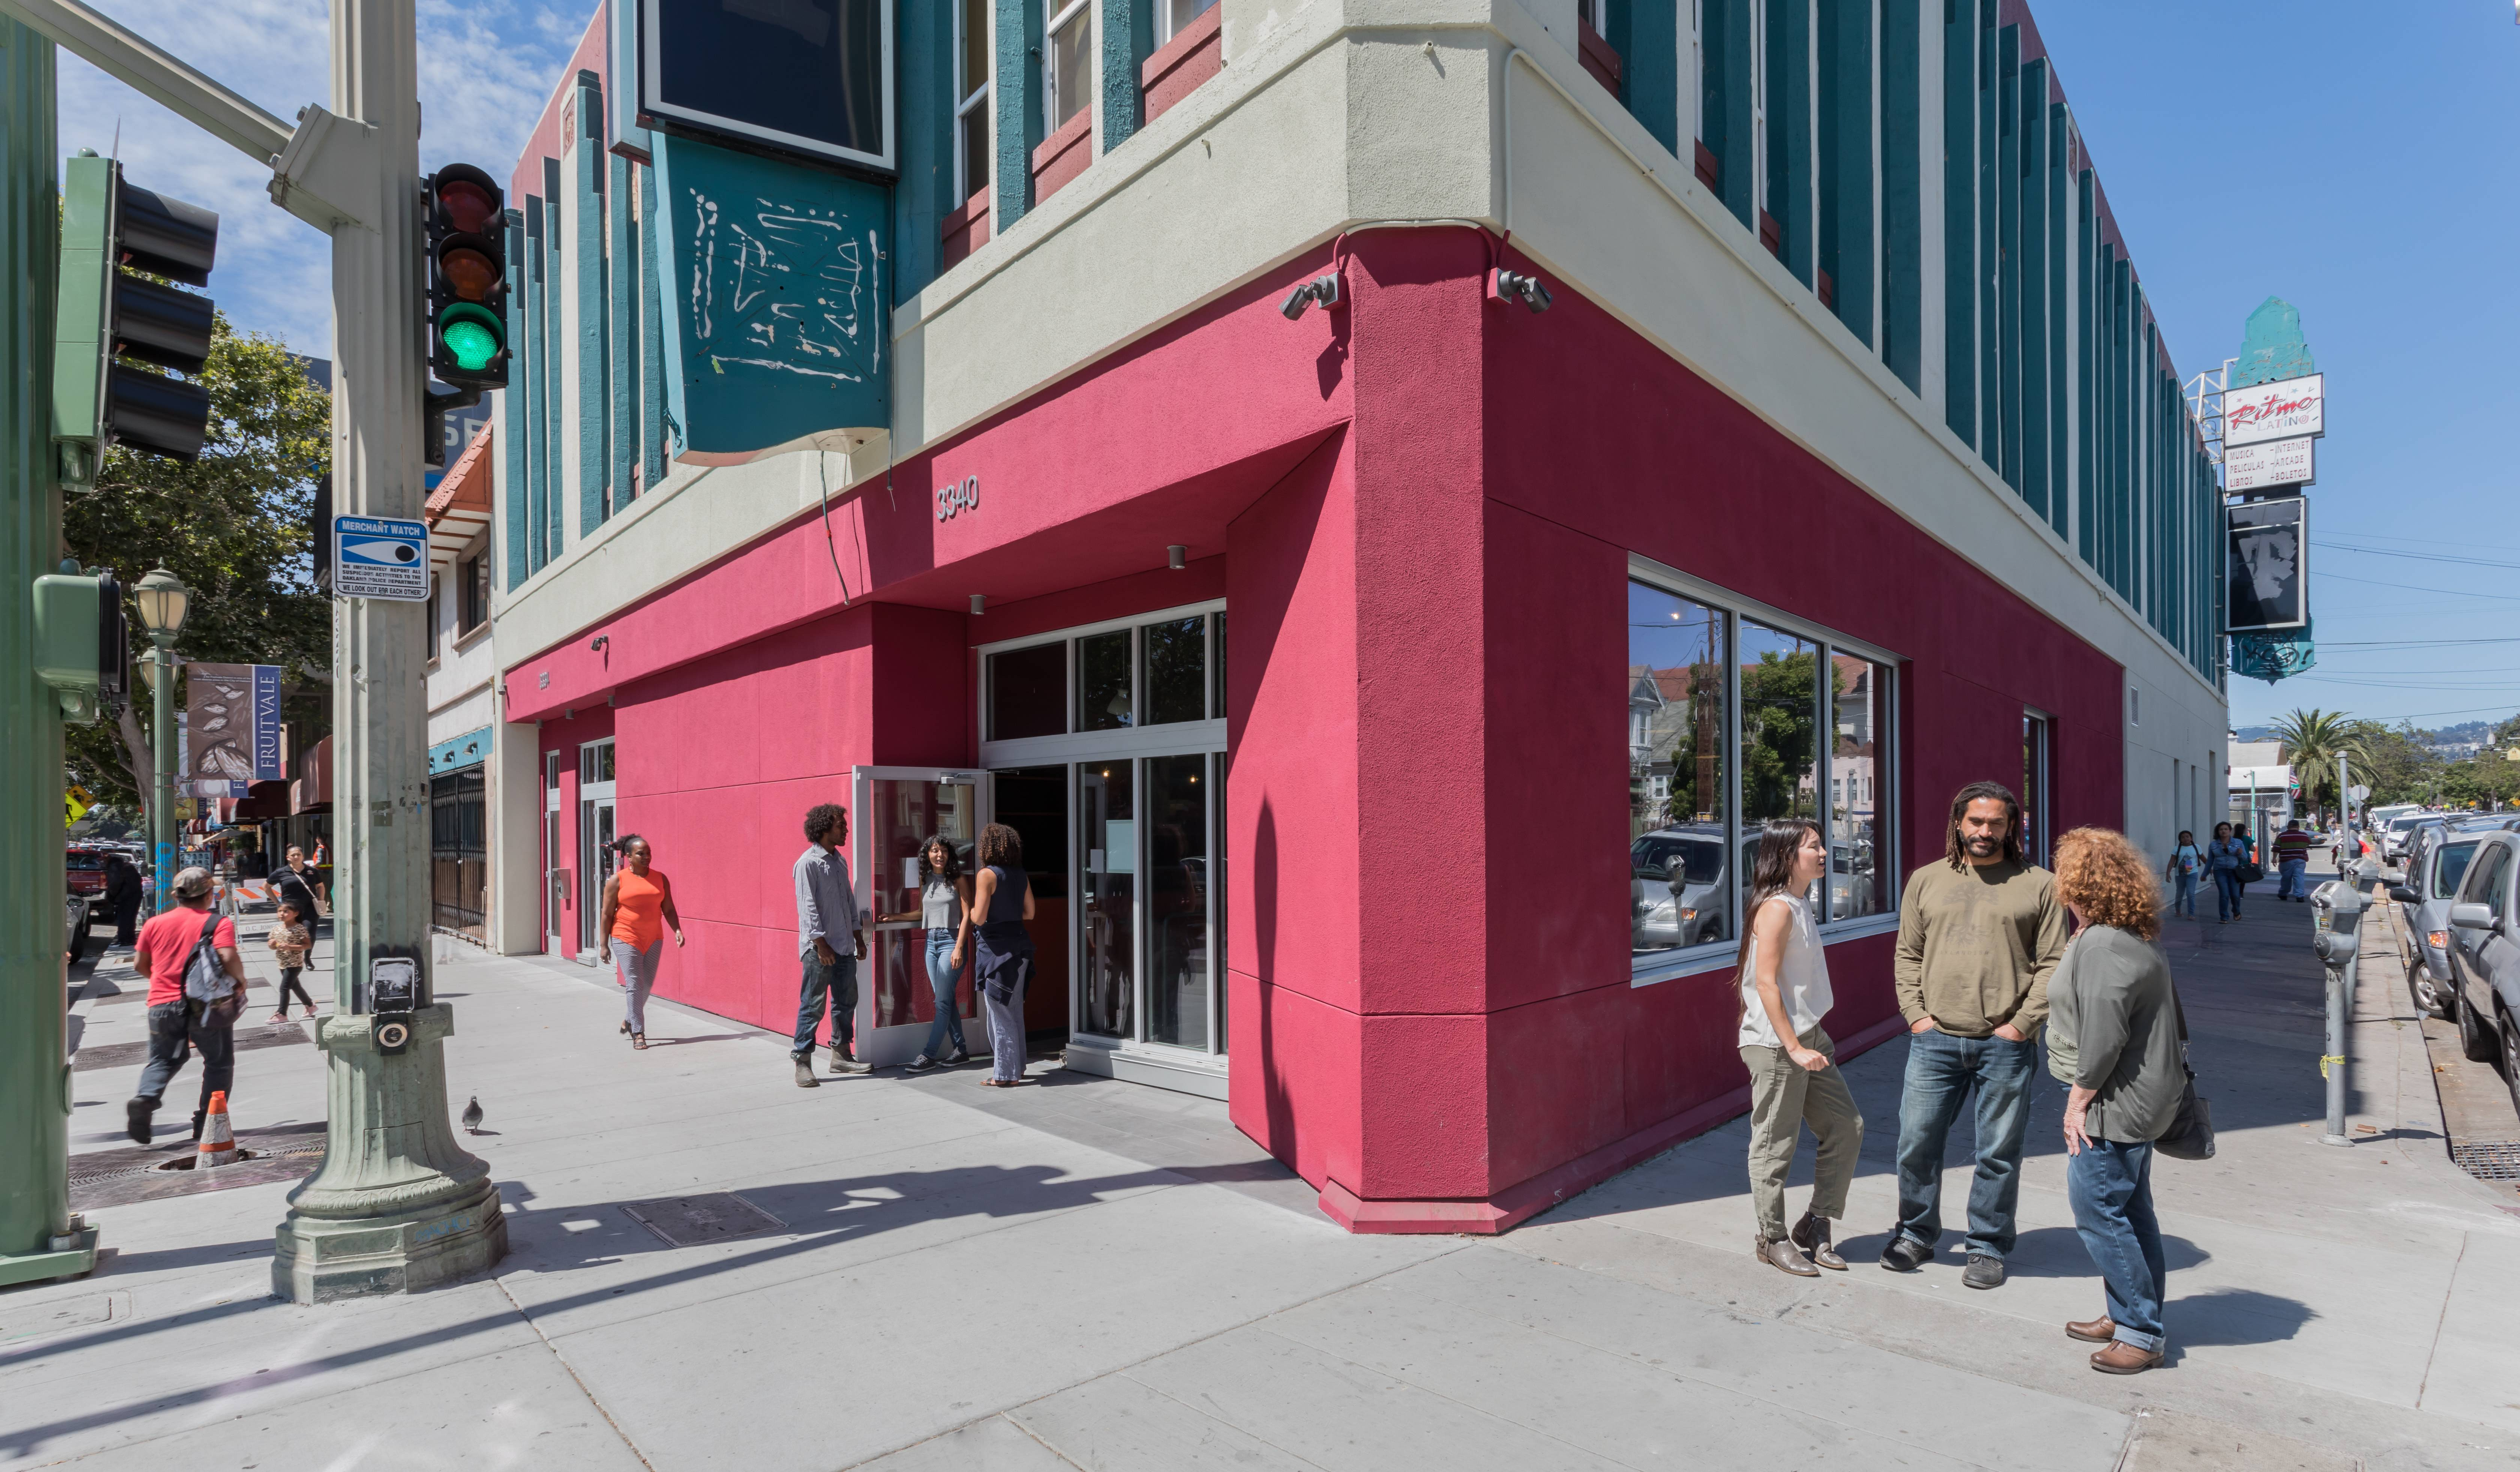 A building painted magenta and teal located on a street corner with a group of men and women standing in front of it, engaged in conversation.